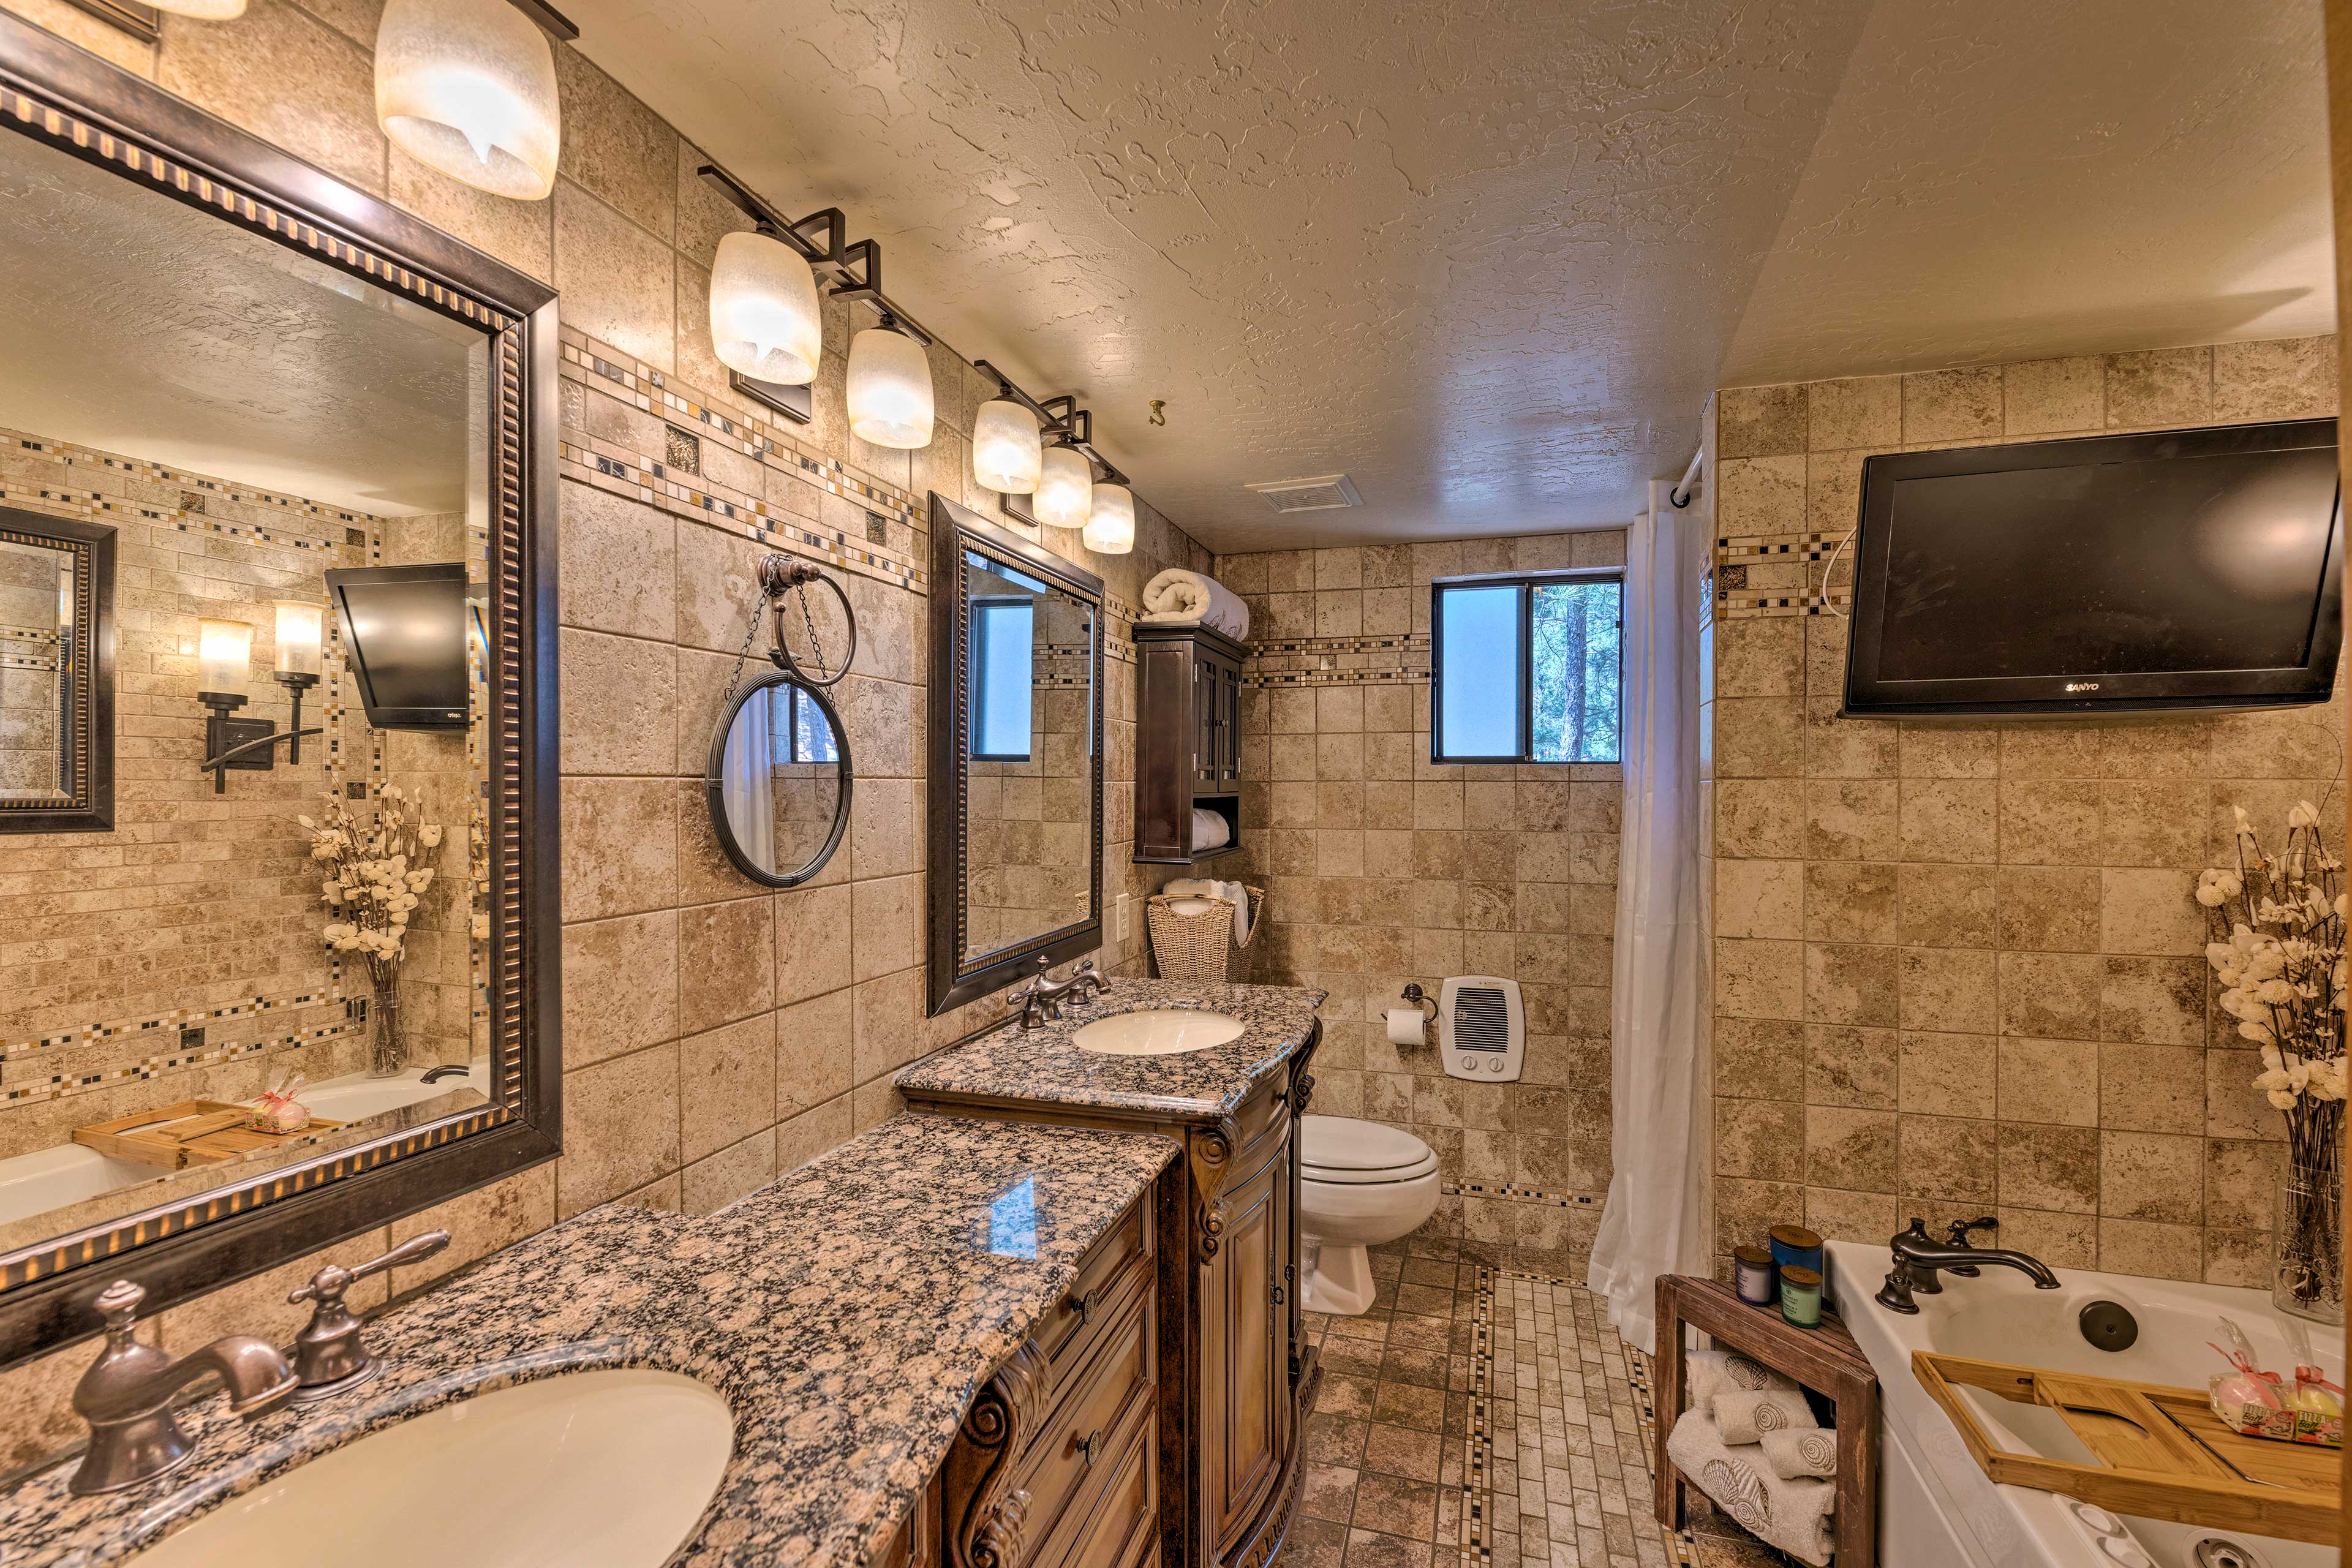 Two can get ready for the day in this bathroom with dual sinks.